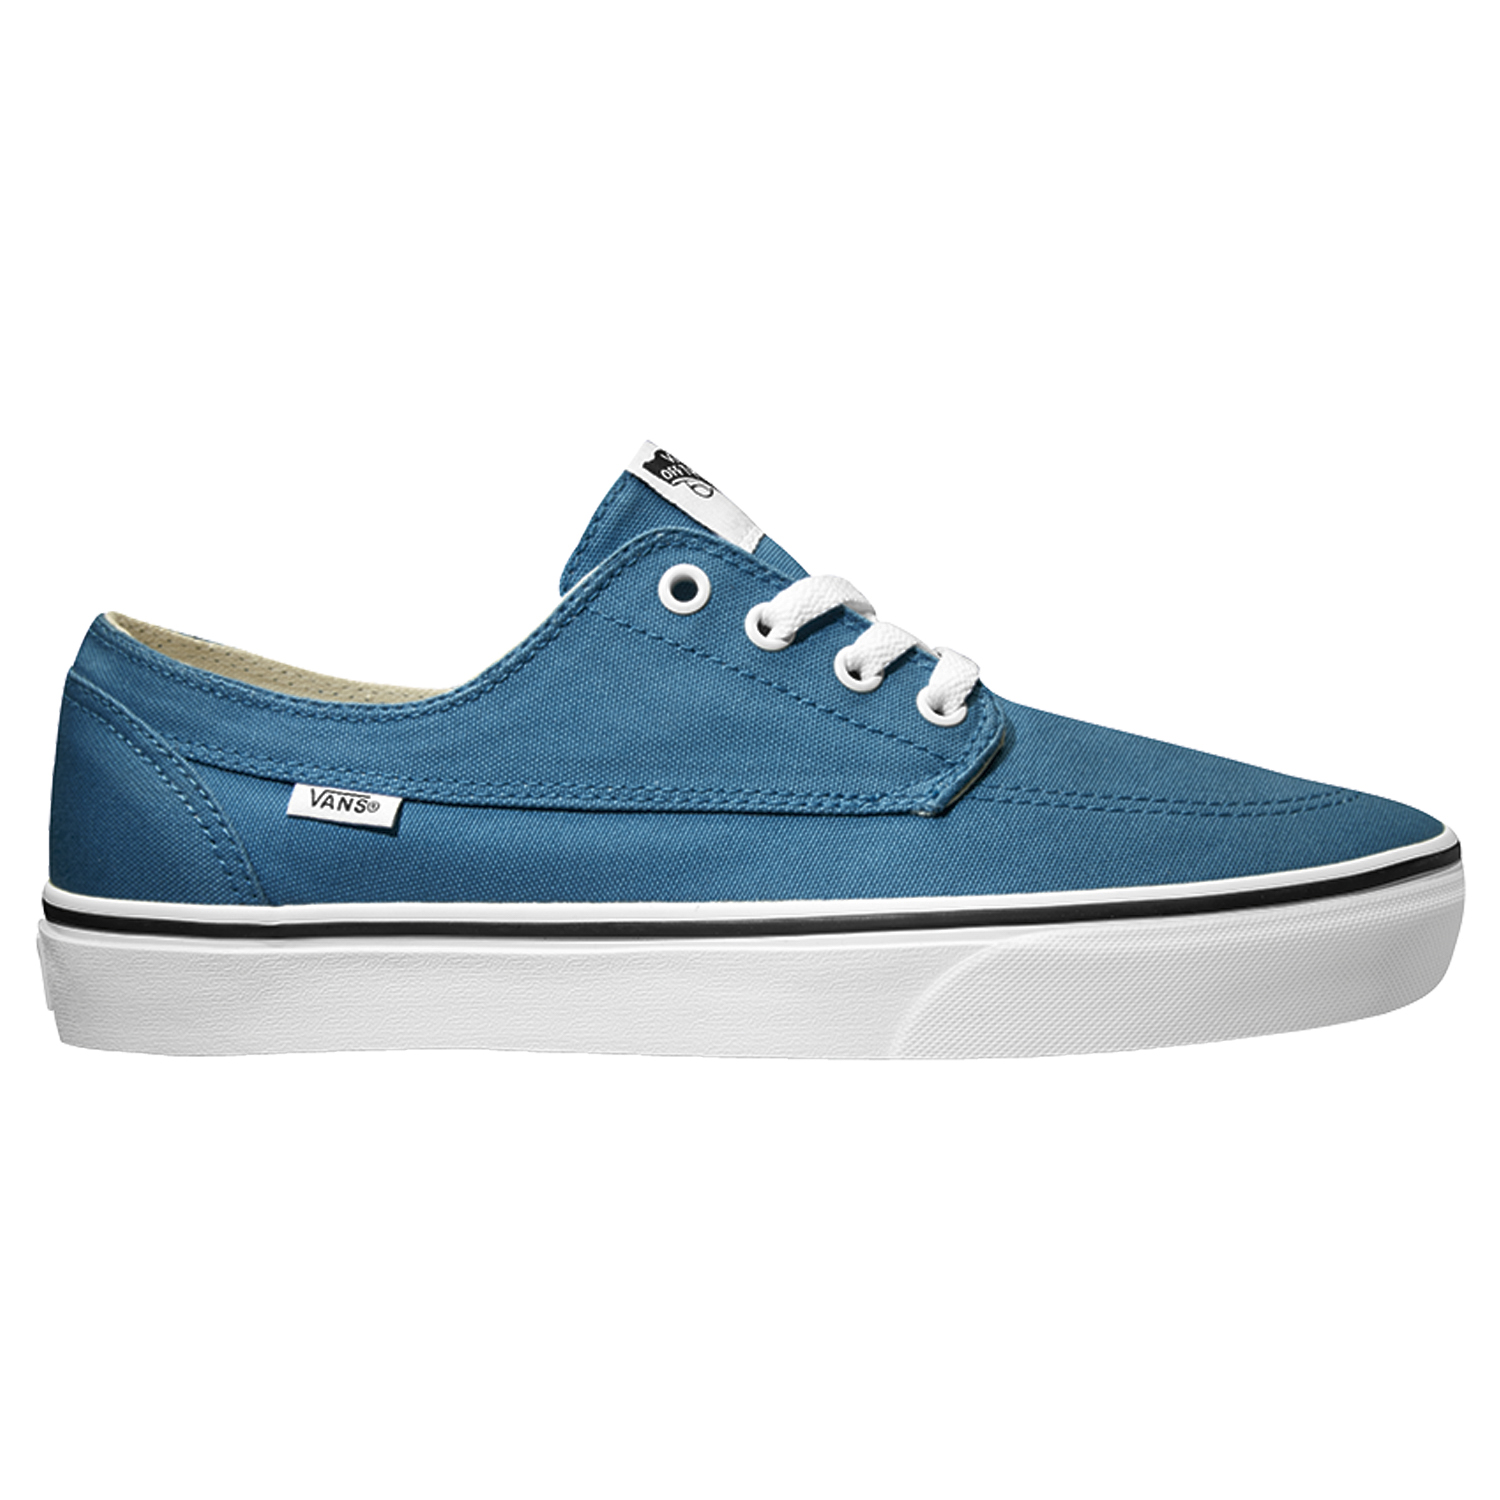 vans-brigata-canvas-seaport-true-white-99-90